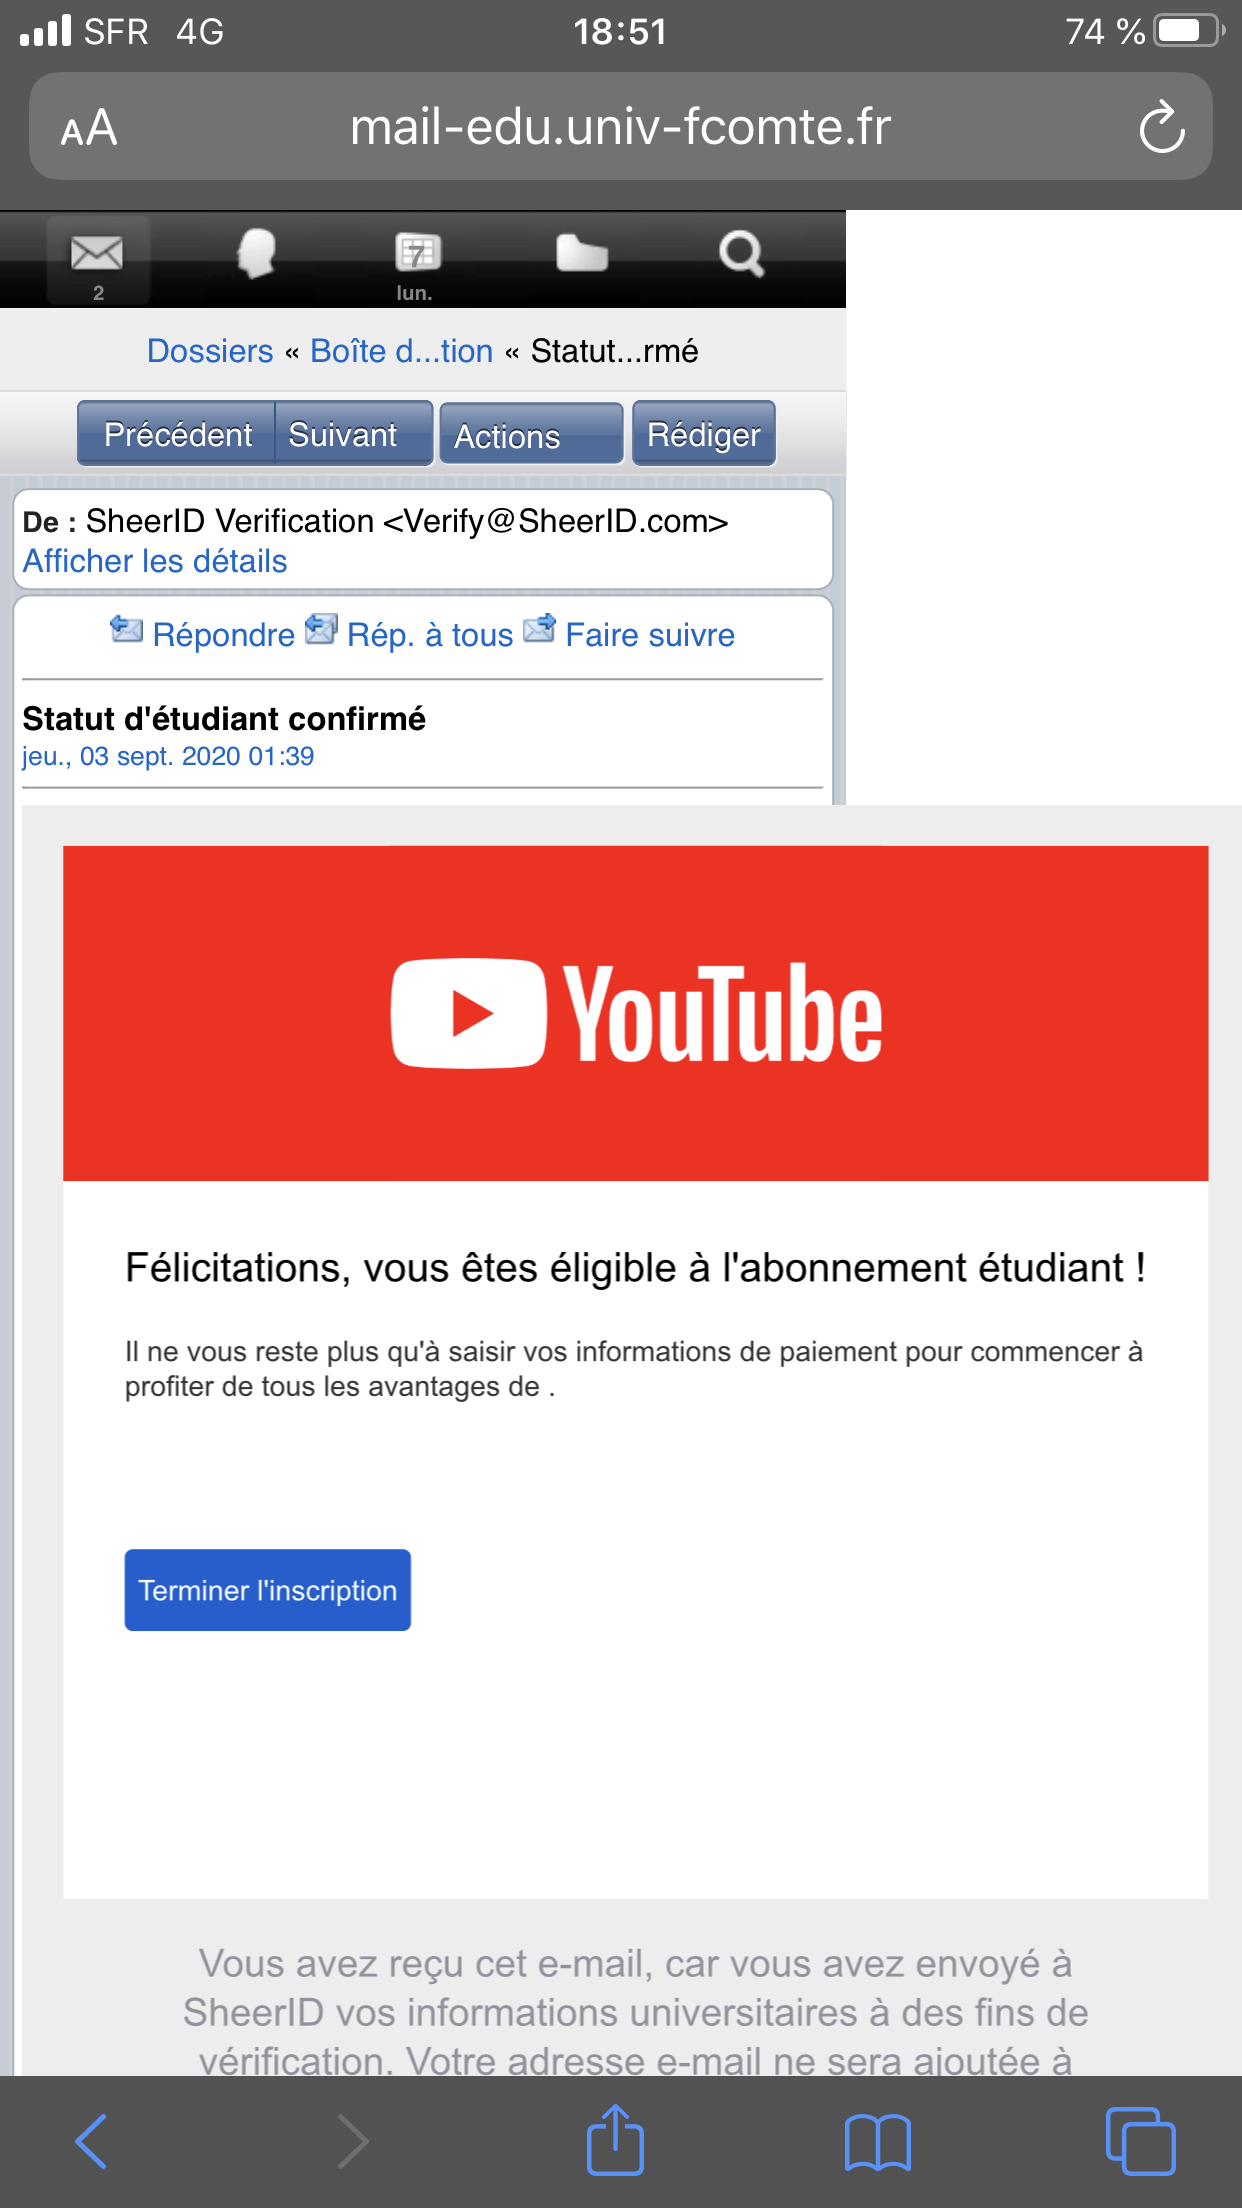 Hi I M Facing Some Problems With My Youtube Premium Account I Used The Wrong Mail Youtube Music Community